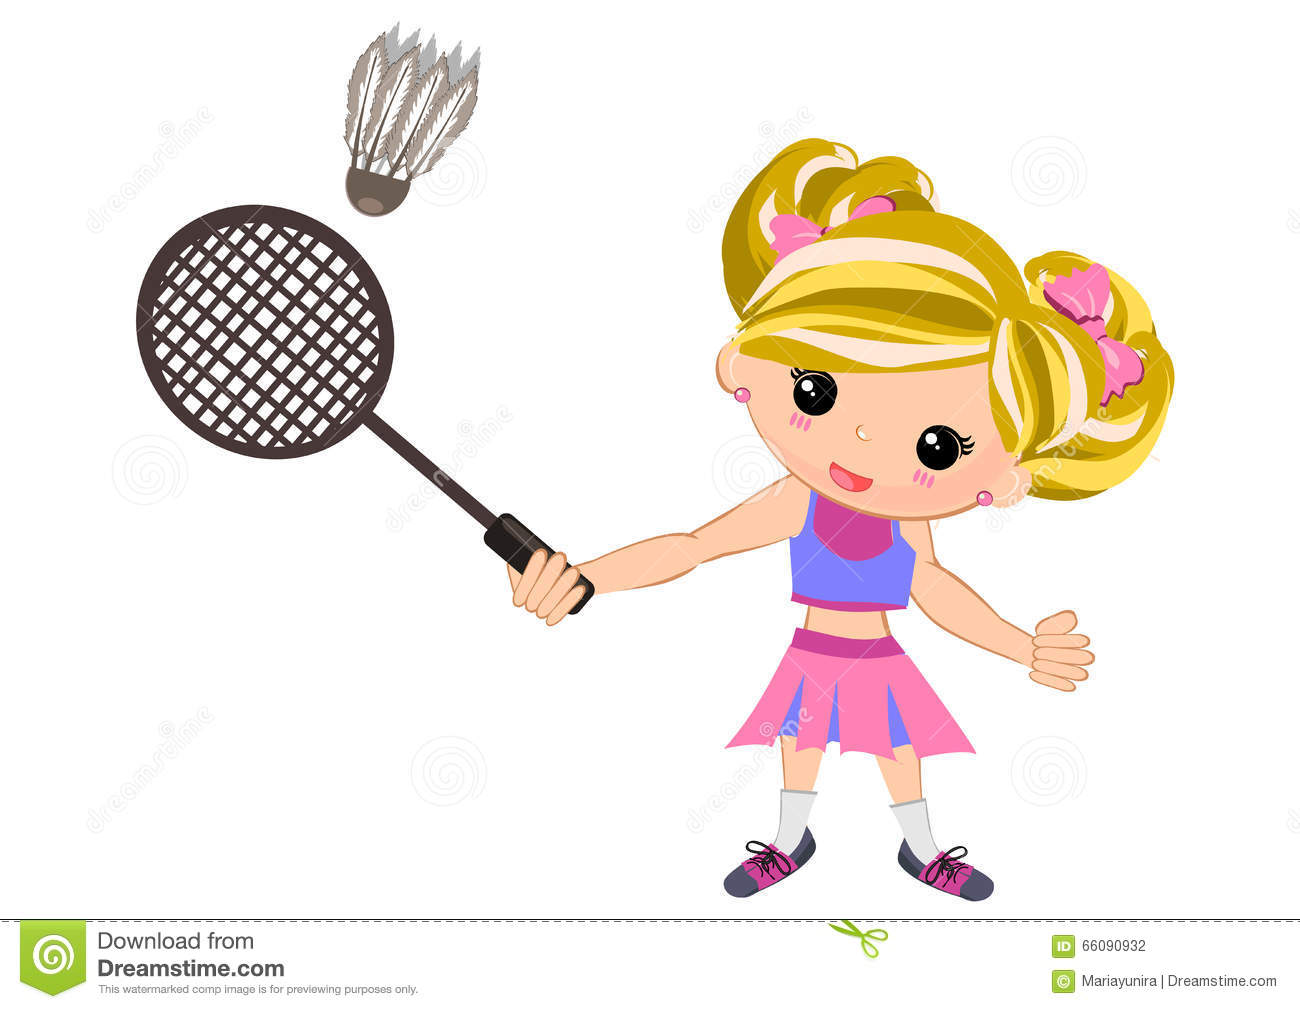 banner freeuse download Kids playing station . Badminton clipart kid play.